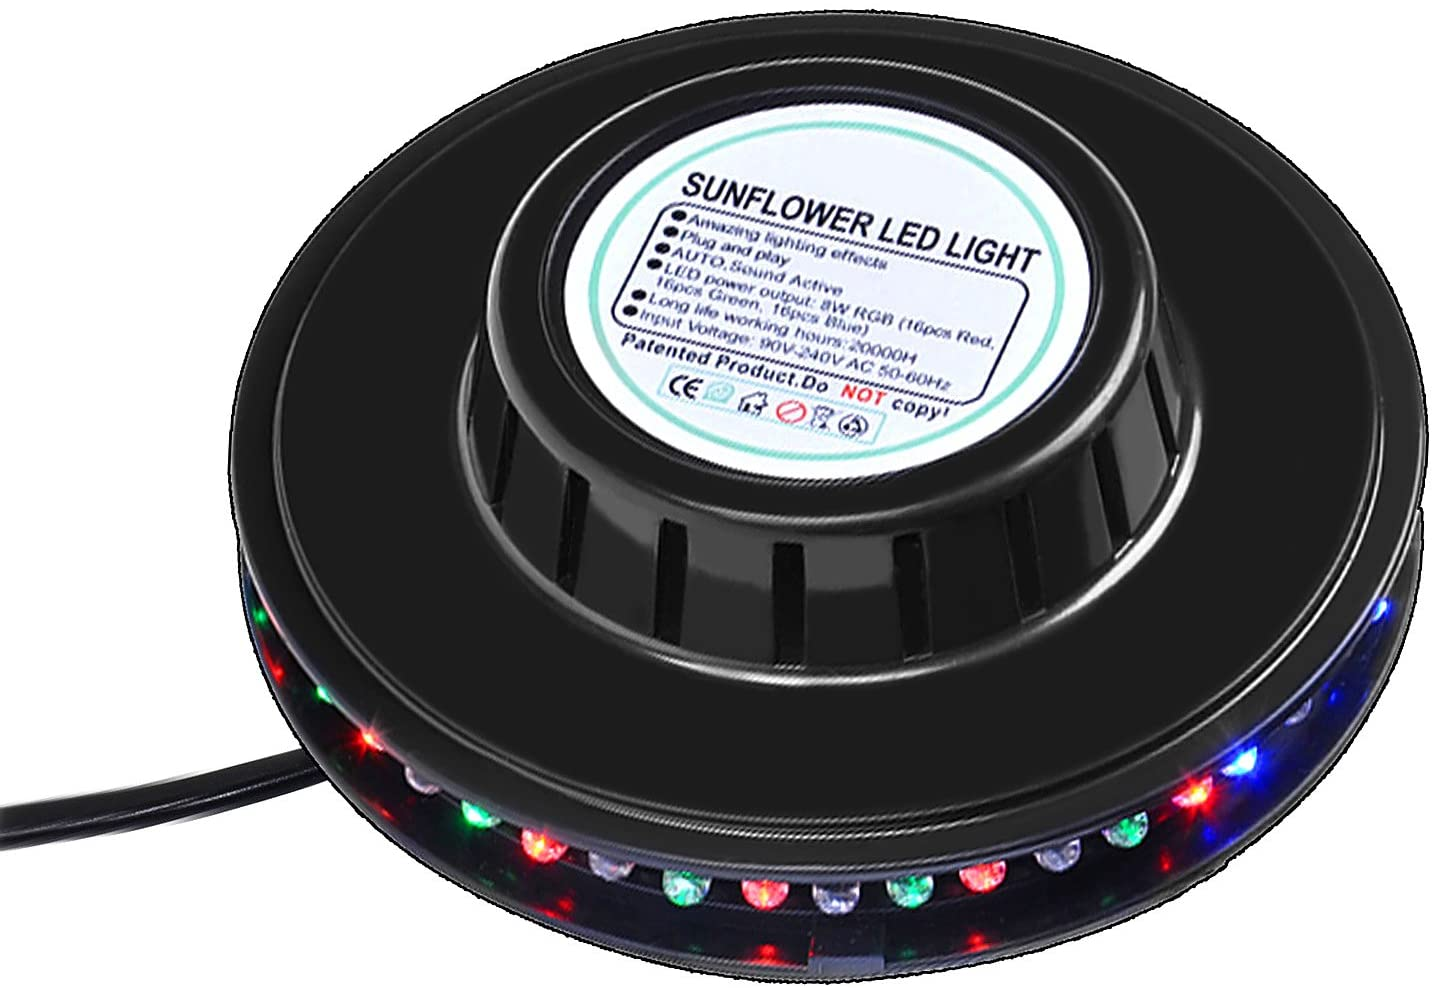 RGB Led Party It is very popular Light Finally popular brand Auto Rotating Stage For Sunflower K Lighting